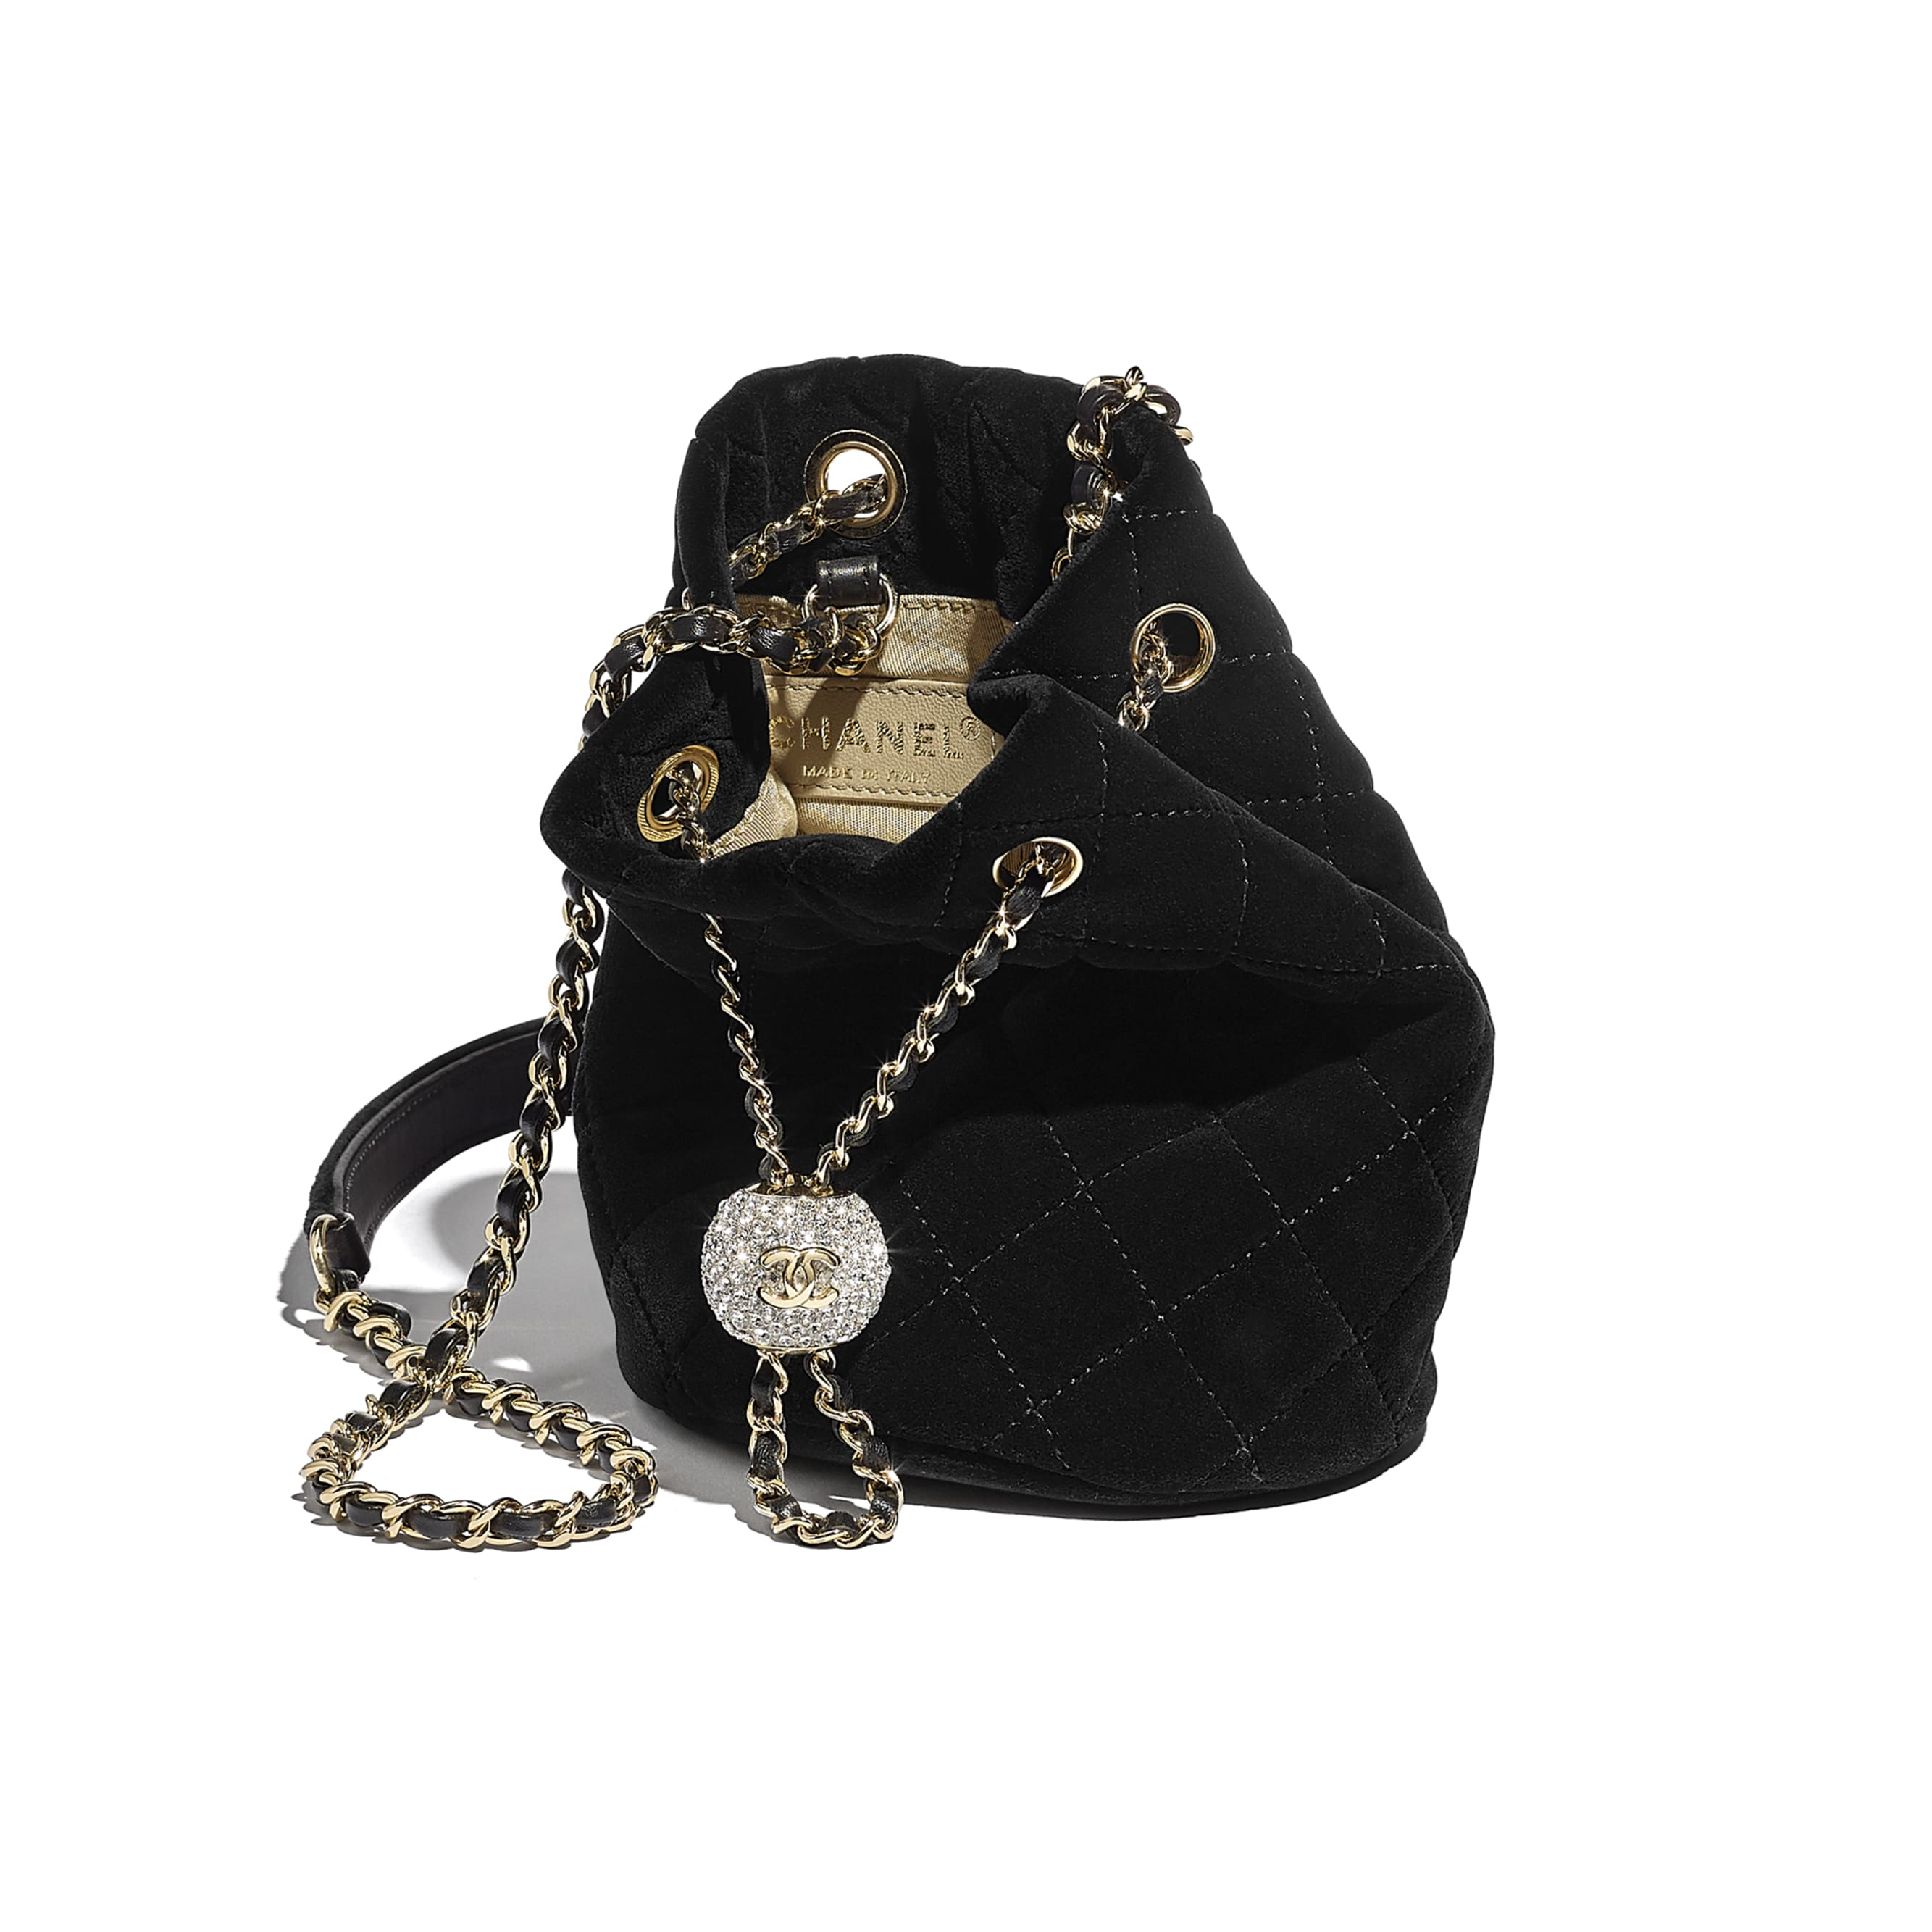 Drawstring Bag - Black - Velvet, Diamanté & Gold-Tone Metal - CHANEL - Other view - see standard sized version